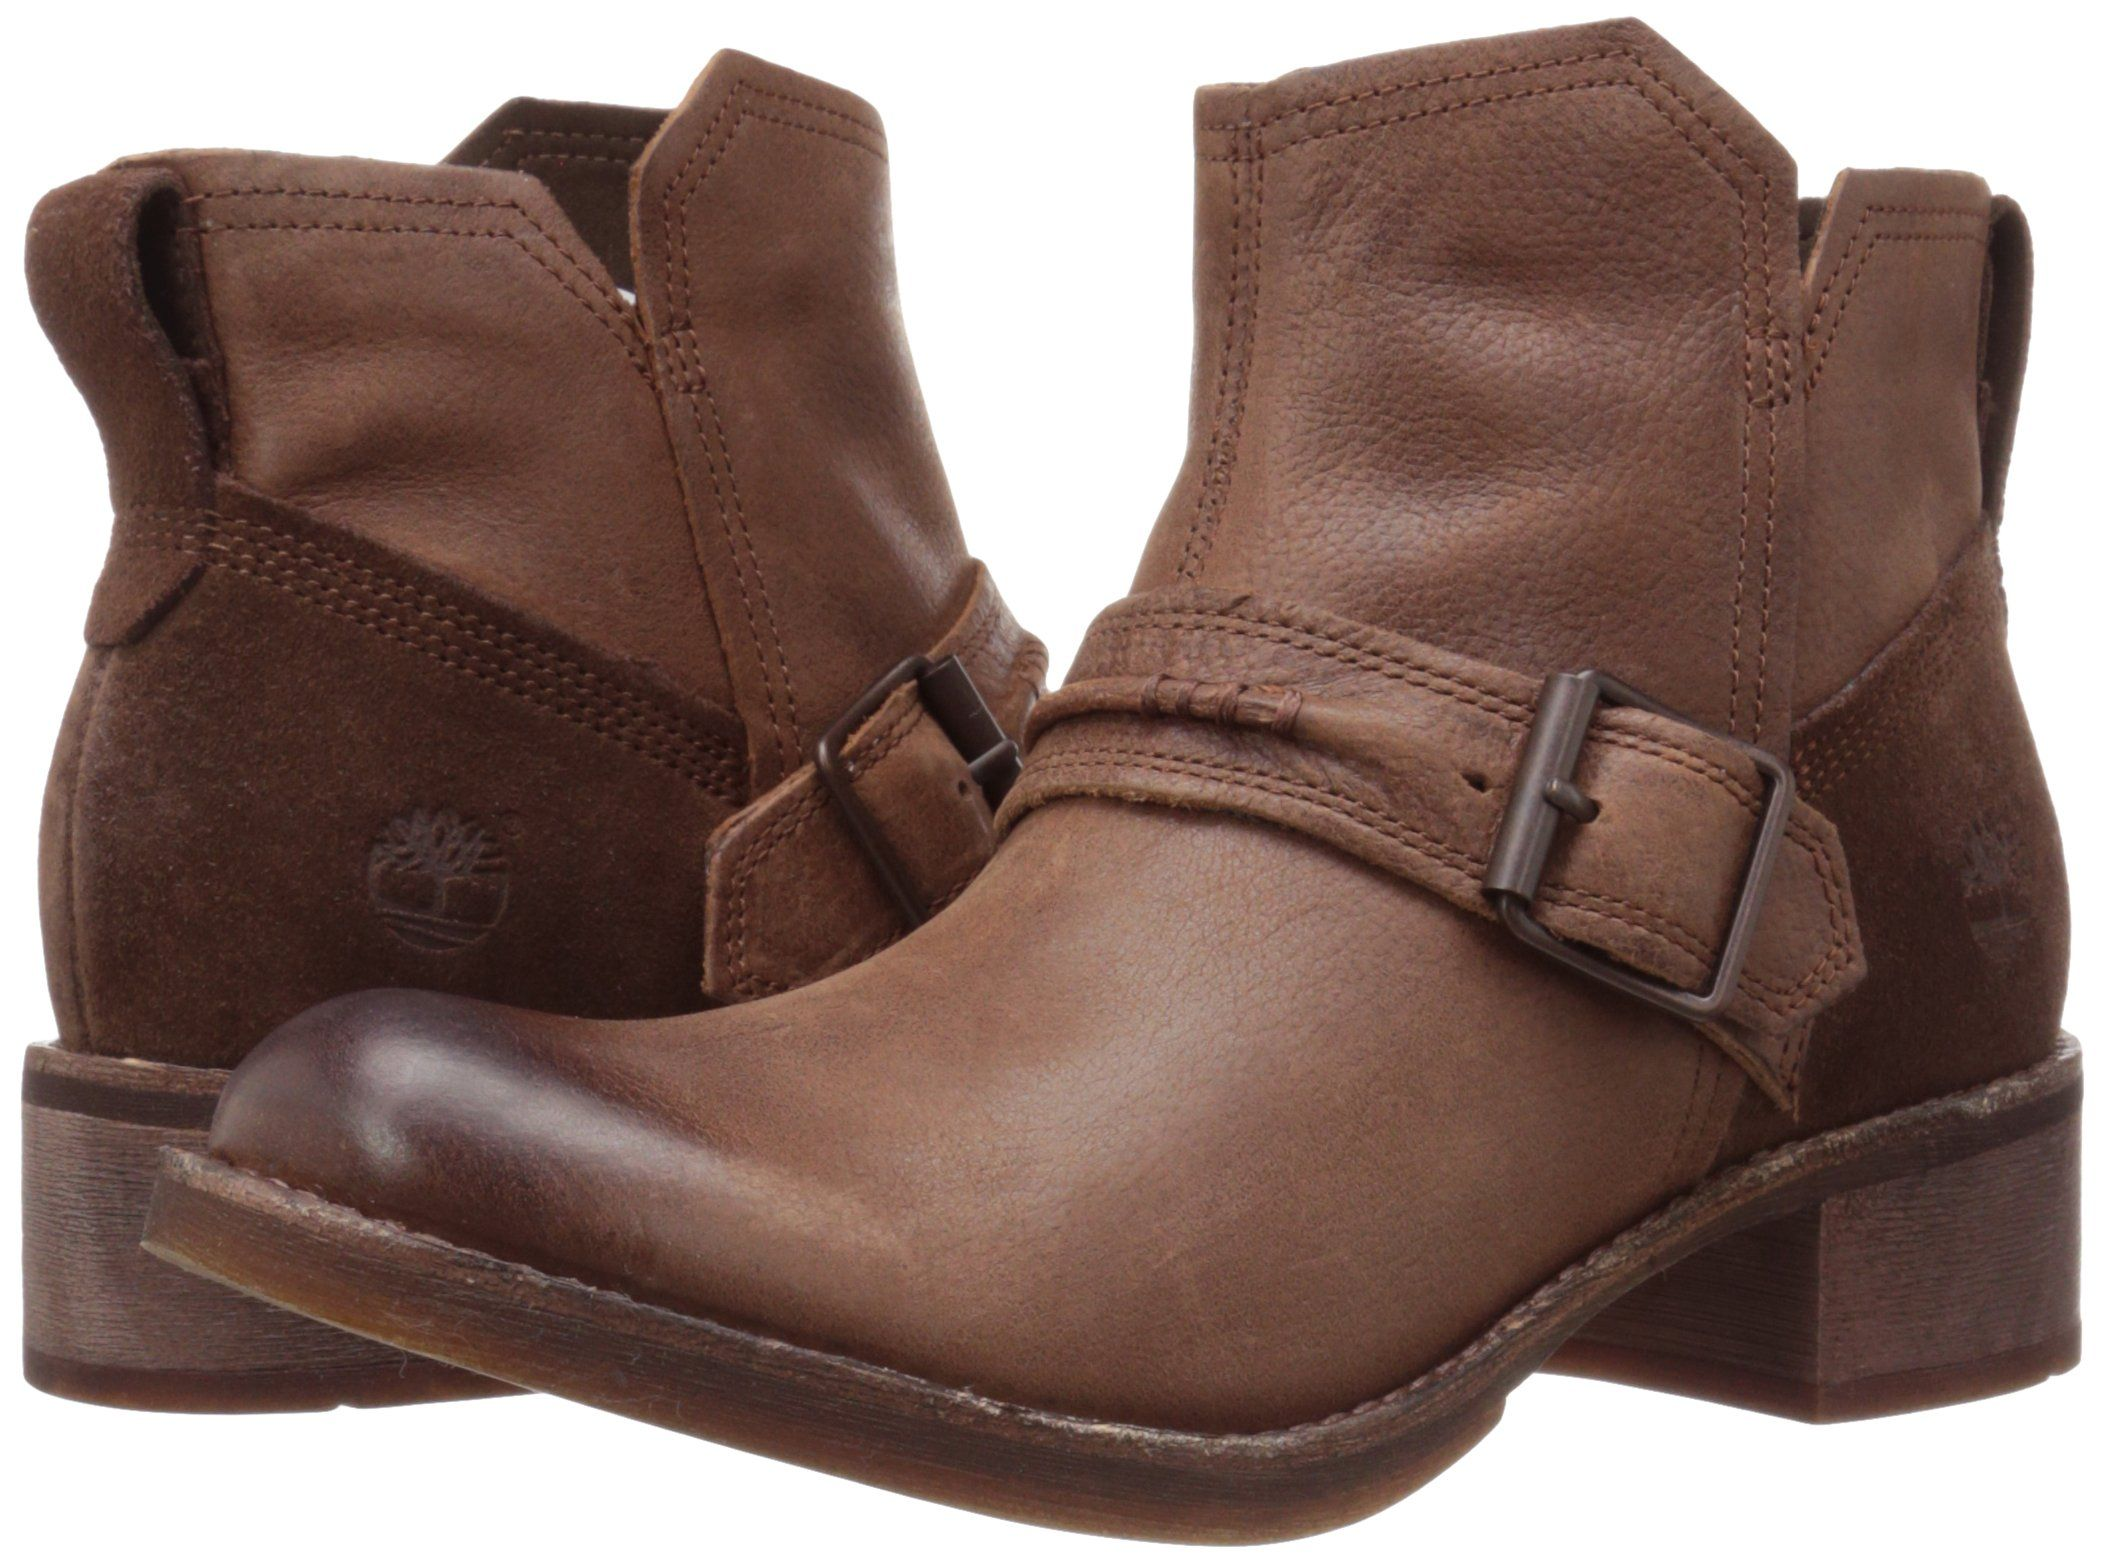 Timberland Womens Whittemore Chelsea Boot Dark Brown Woodlands 8 M US *  Read more at the